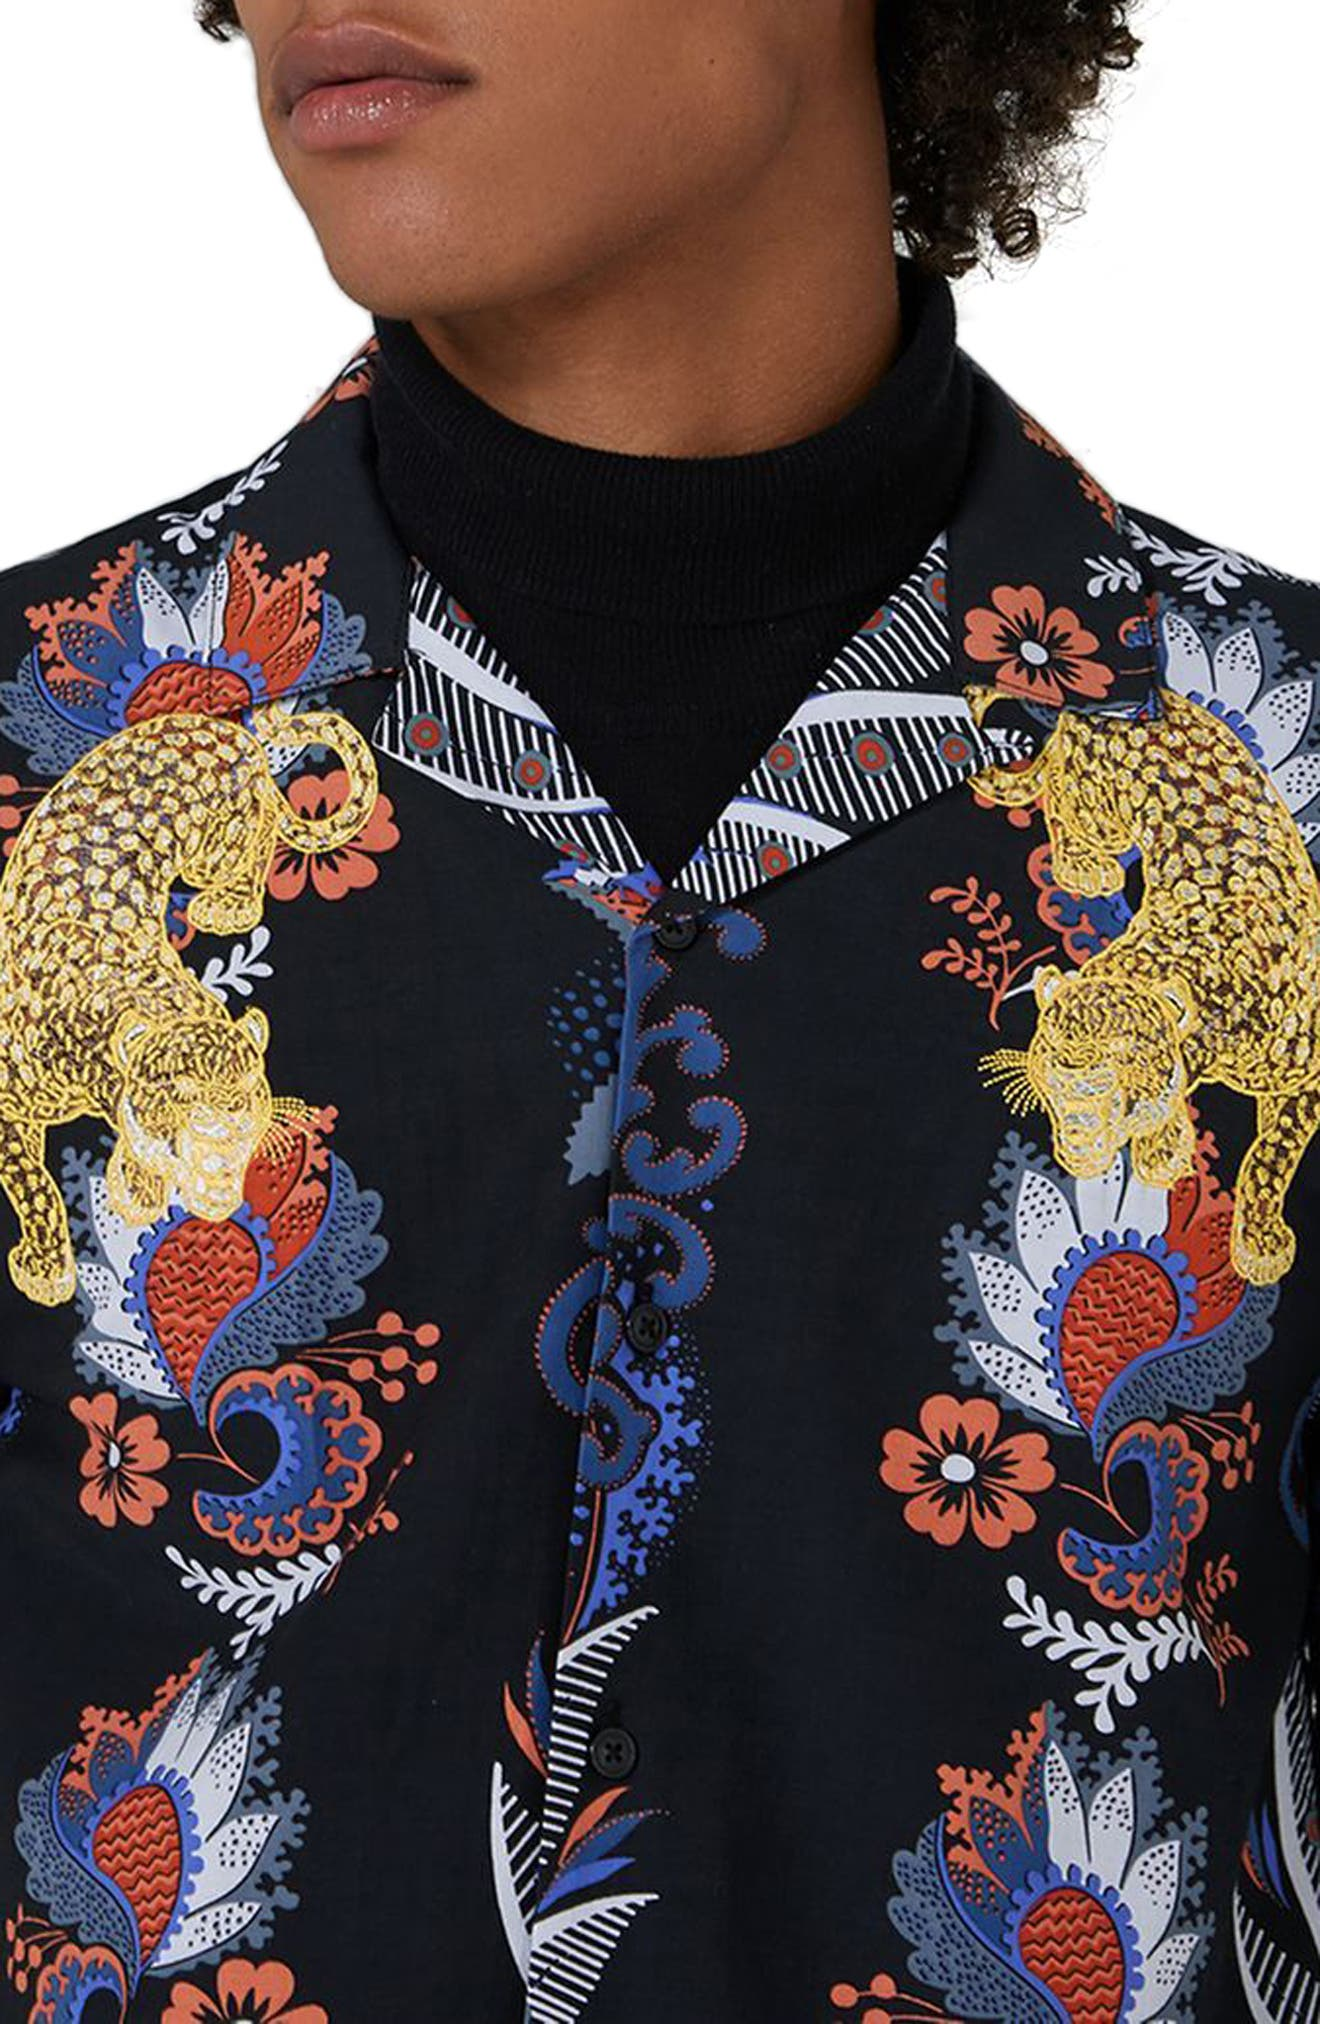 Embroidered Tiger Print Revere Collar Shirt,                             Alternate thumbnail 3, color,                             Black